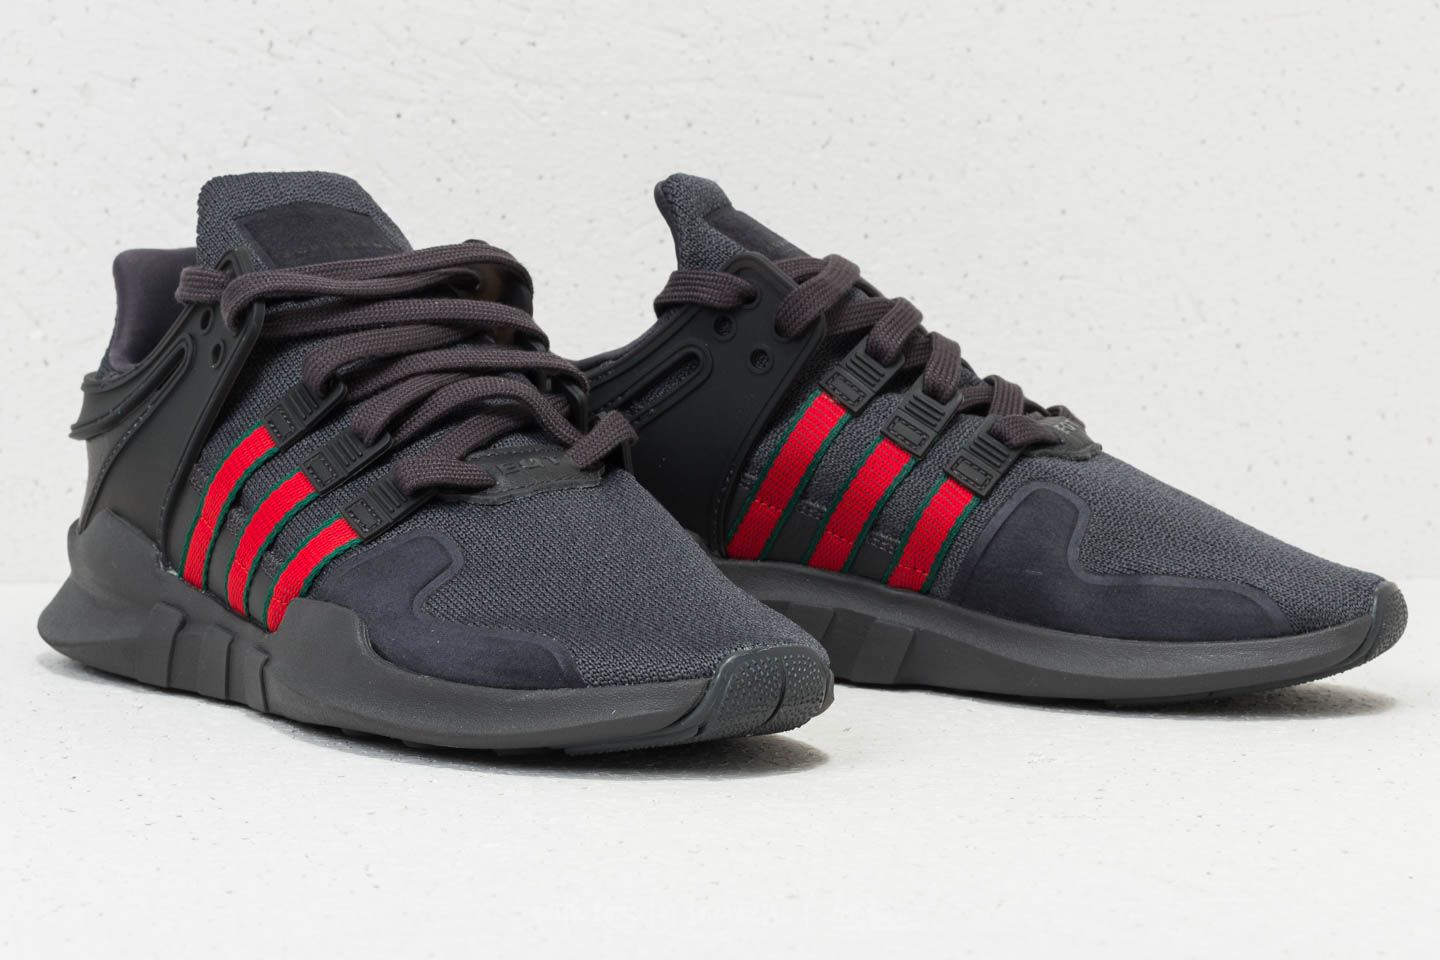 adidas EQT Support ADV Utility Black  Scarlet  Collegiate Green at a great  price 117 de2030a6d